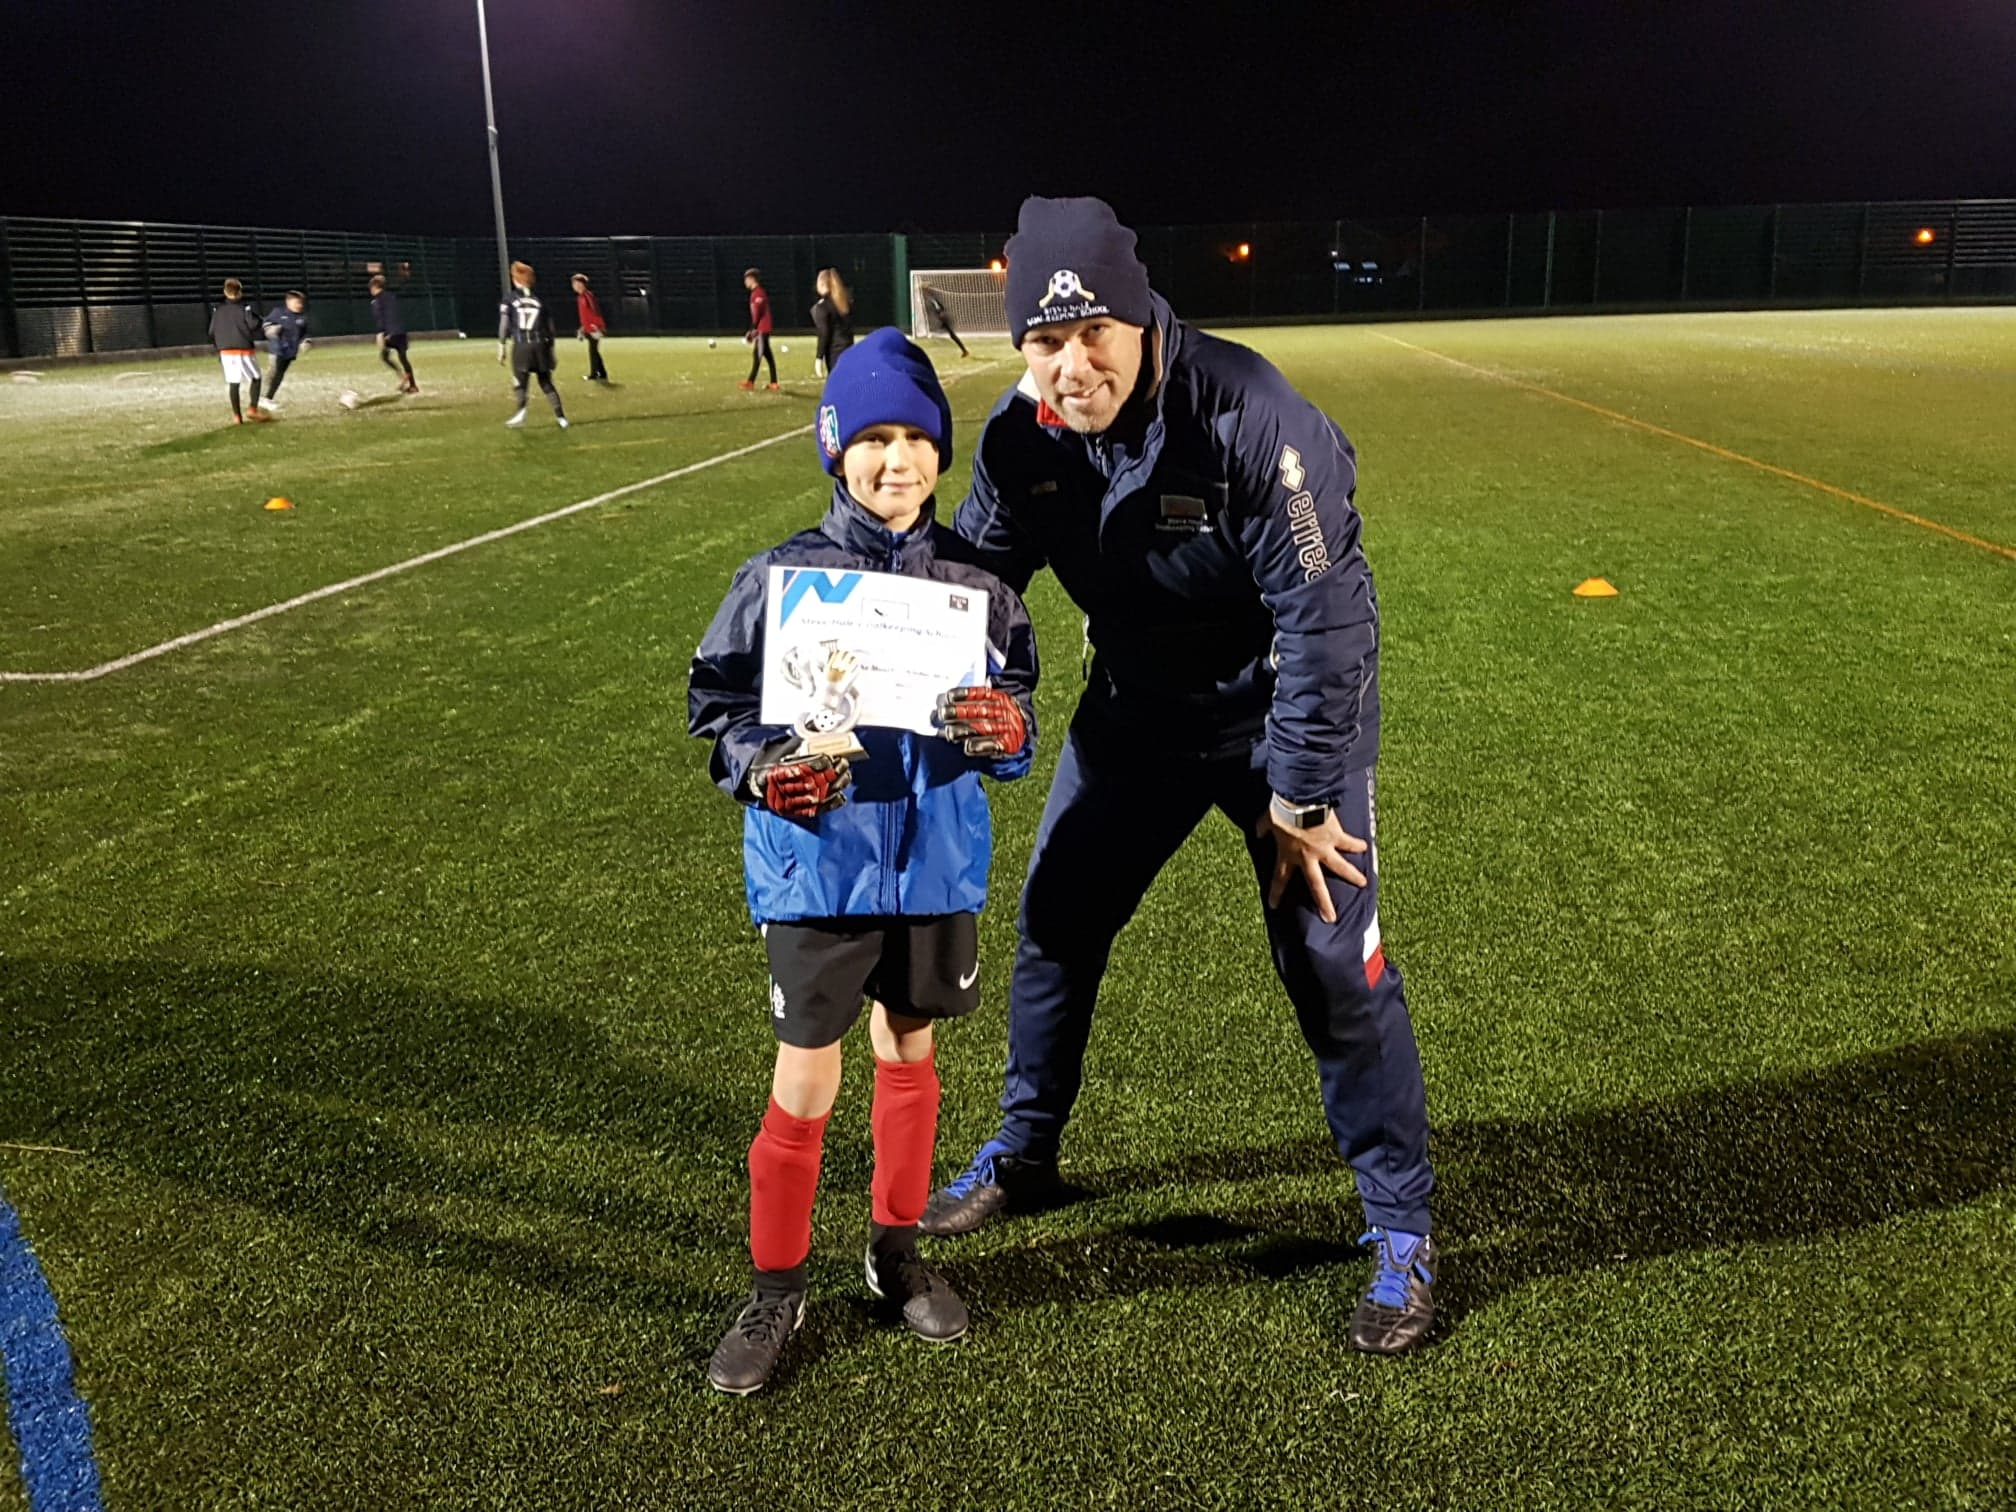 Goalkeeper-of-the-Month-Billy-Morley